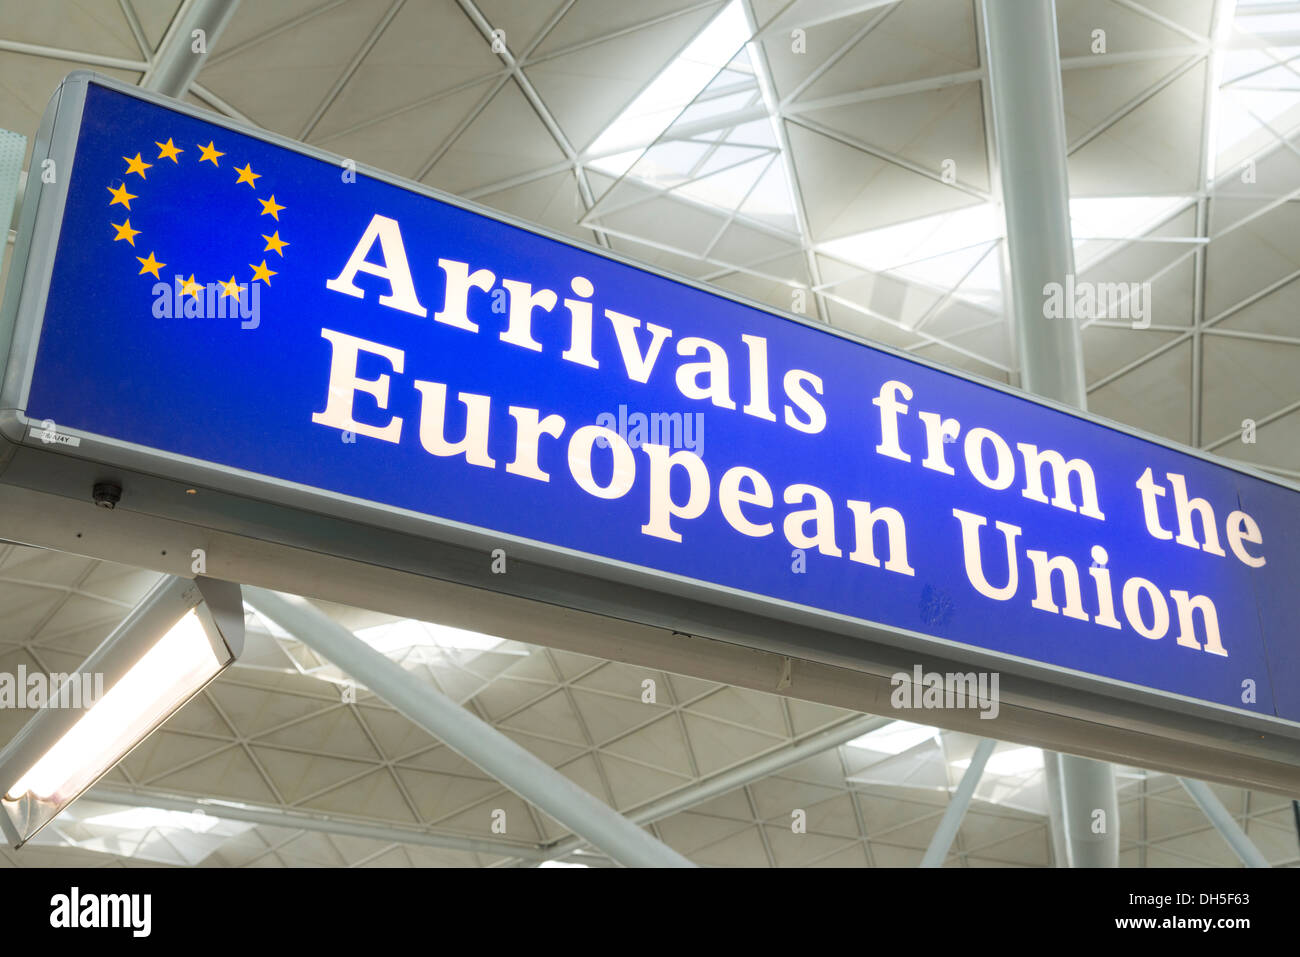 Arrivals from the European Union sign at the exit to Stansted Airport, England, UK - Stock Image